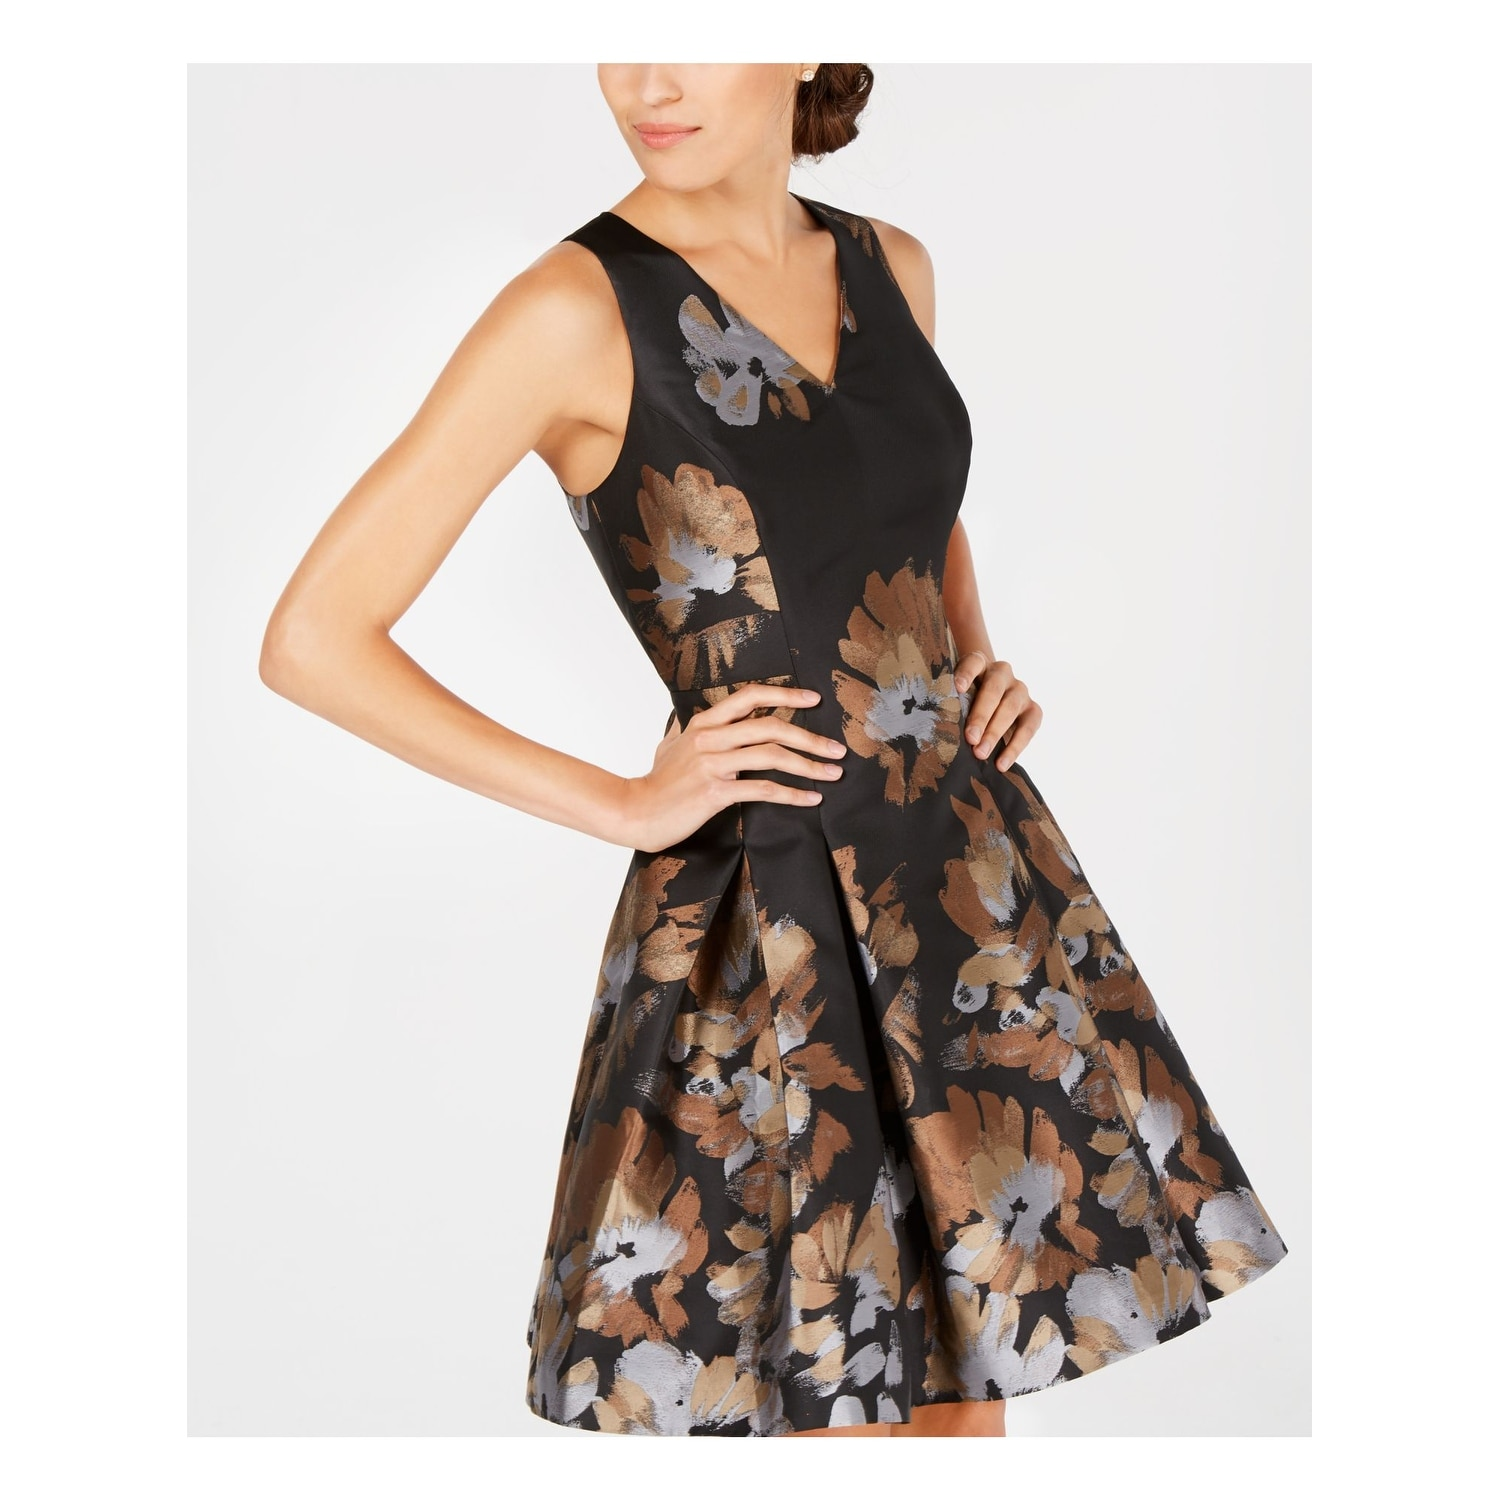 Tommy Hilfiger Womens Sleeveless Floral Print Party Dress